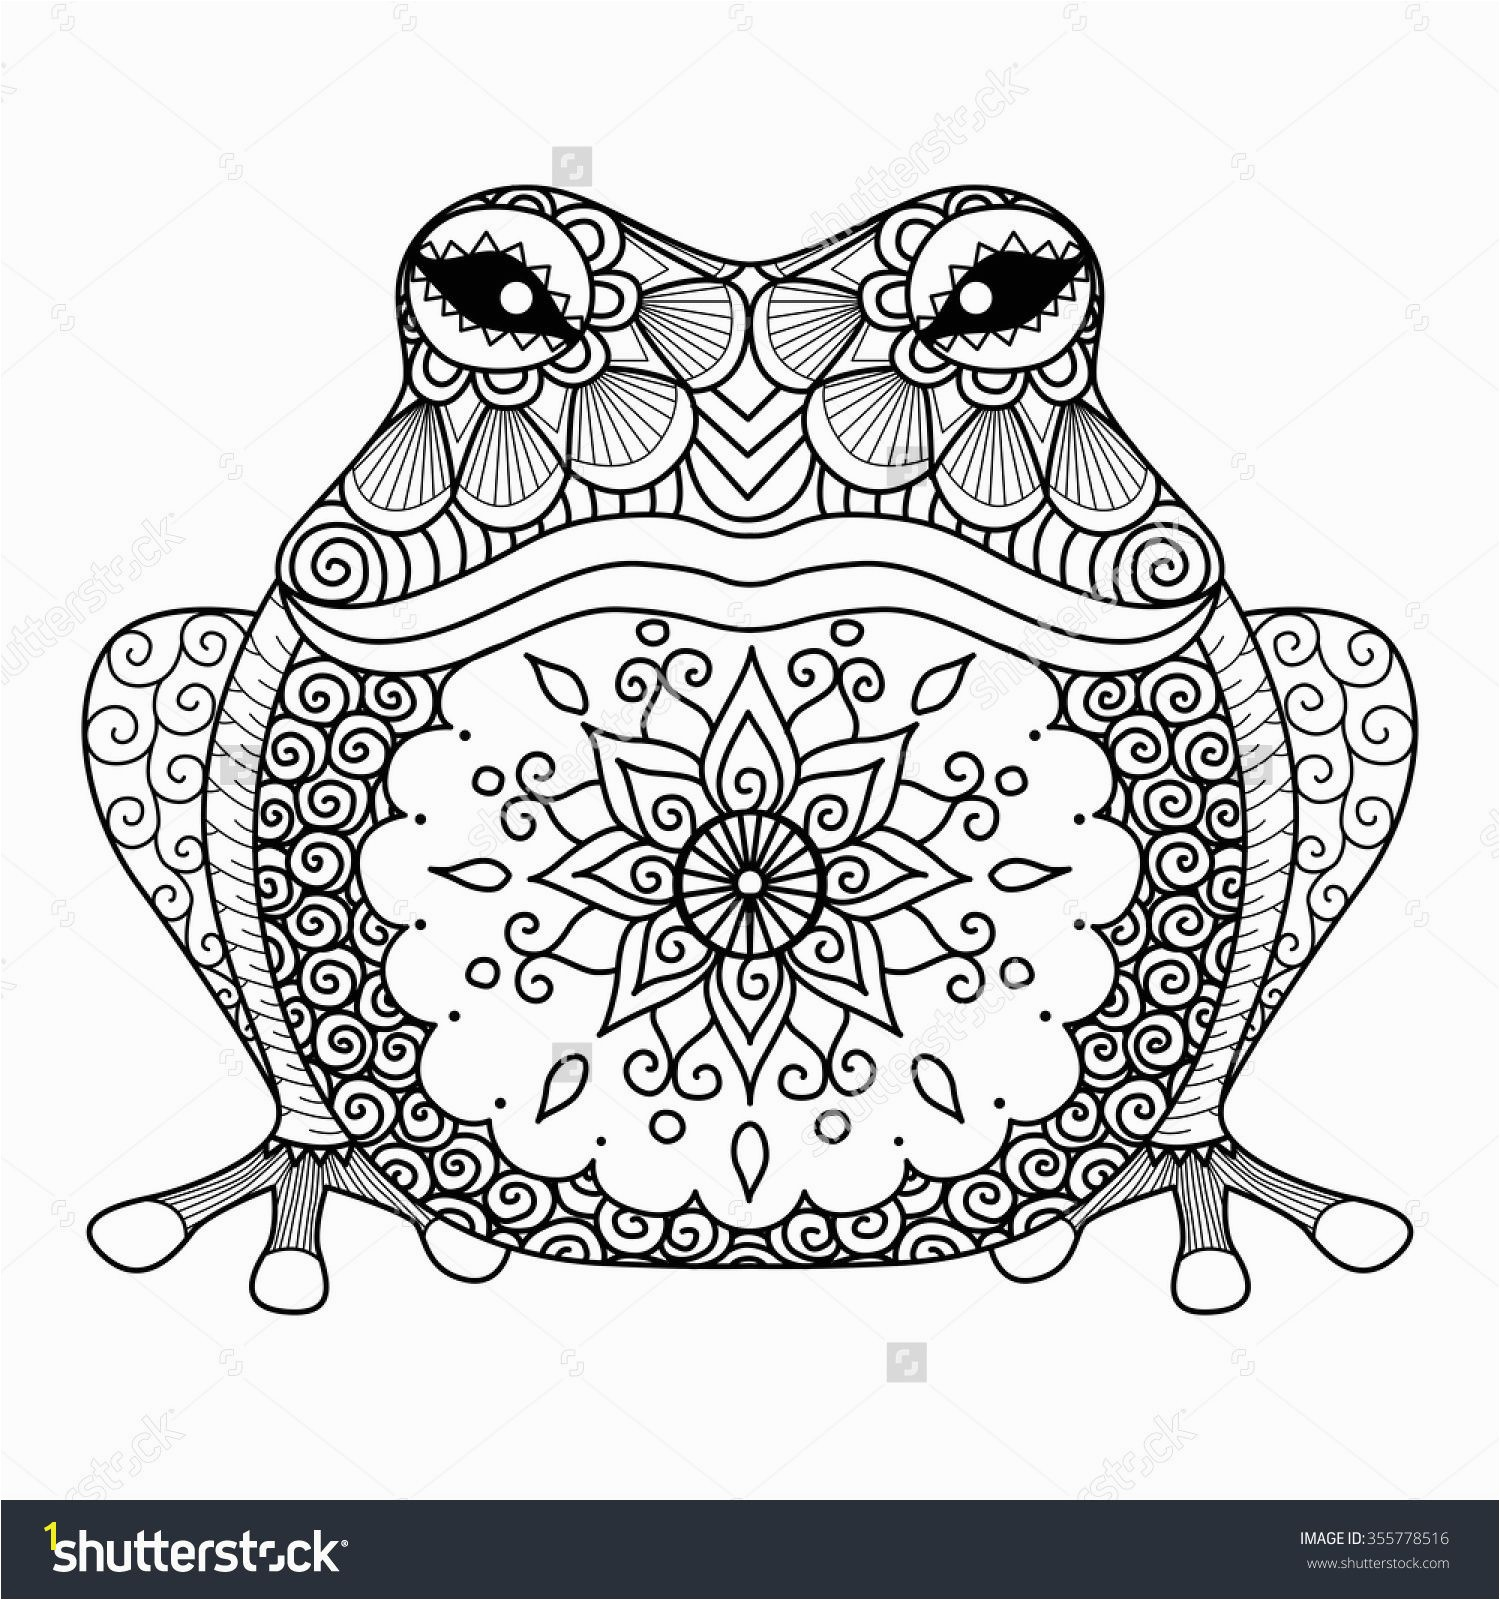 Hand drawn zentangle frog for coloring book for adult shirt design